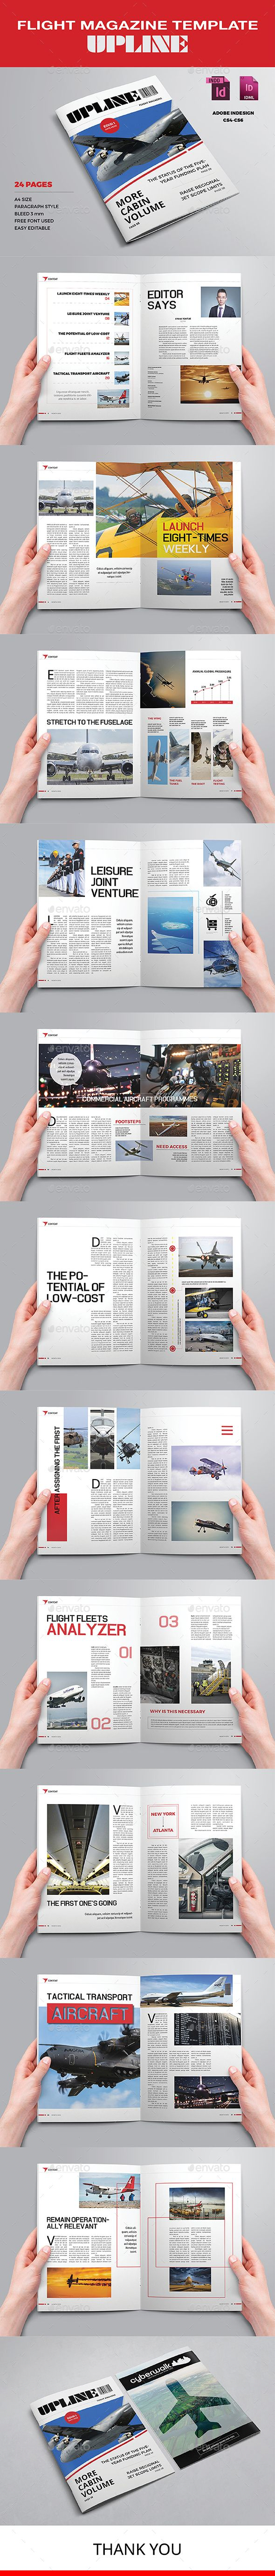 Flight Magazine Template - Upline